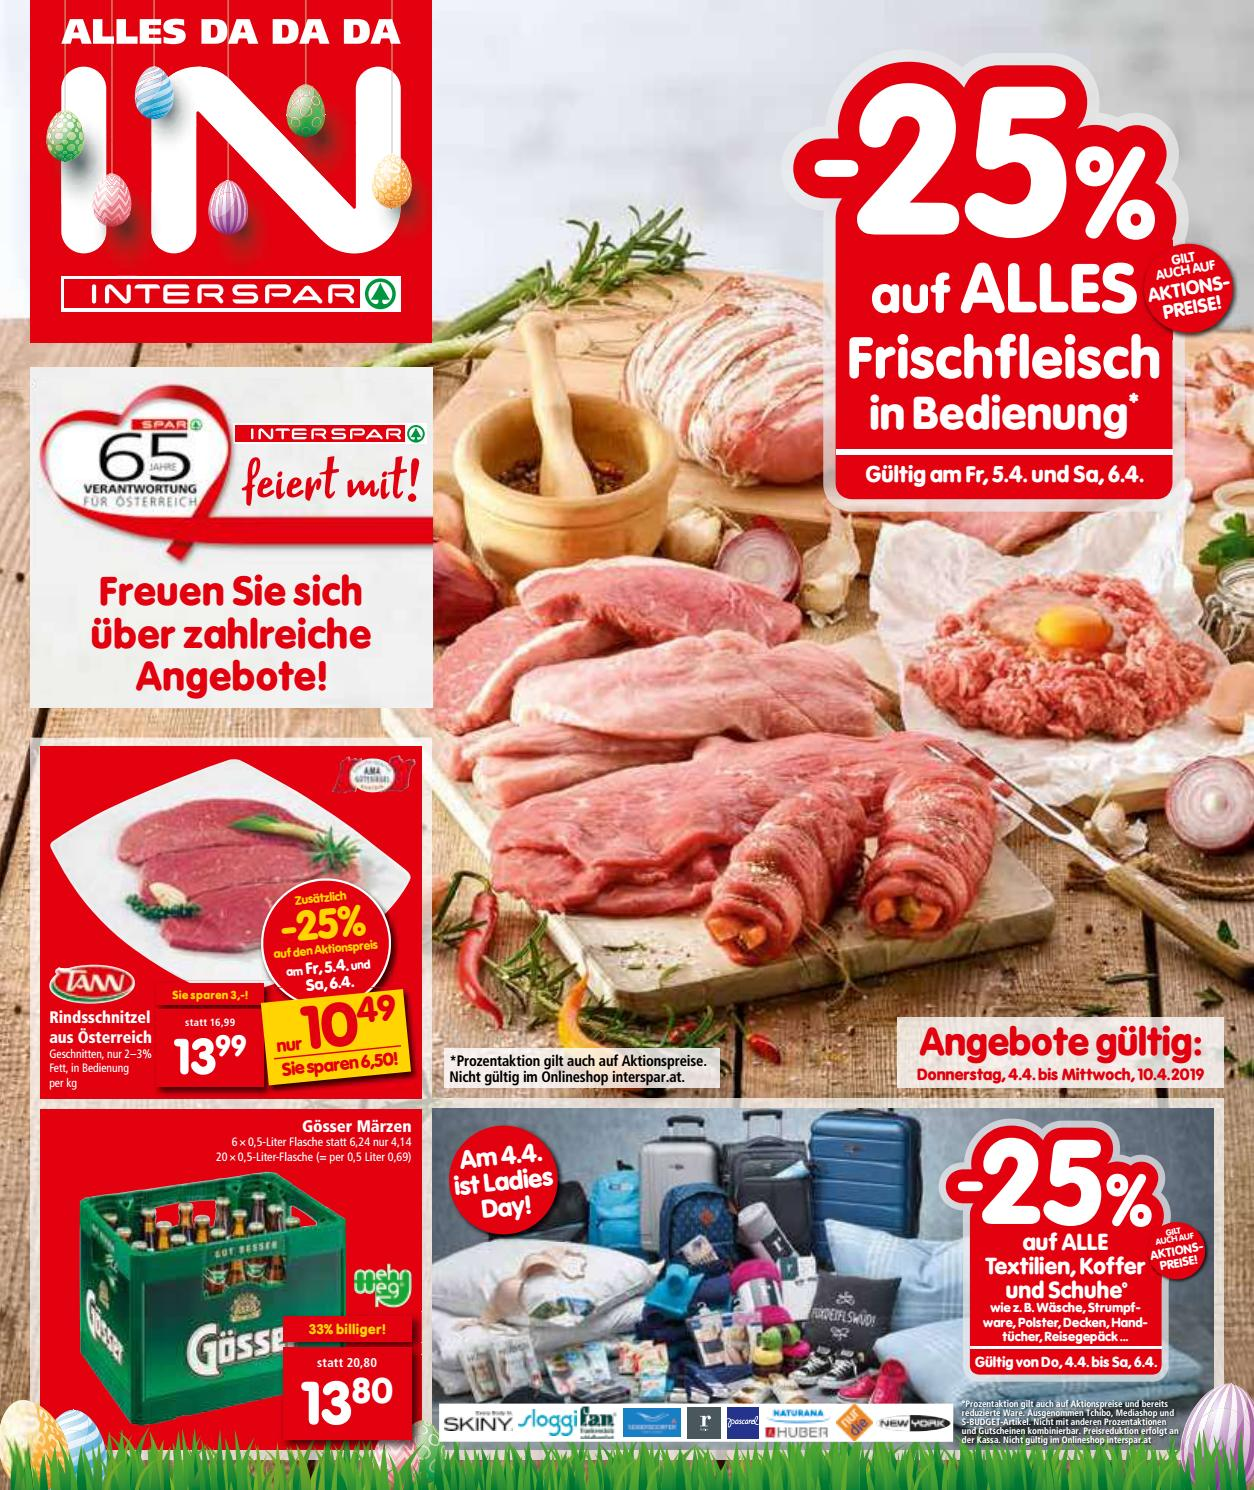 Sonnenliege Interspar Interspar Kw 14 2019 By Russmedia Digital Gmbh Issuu